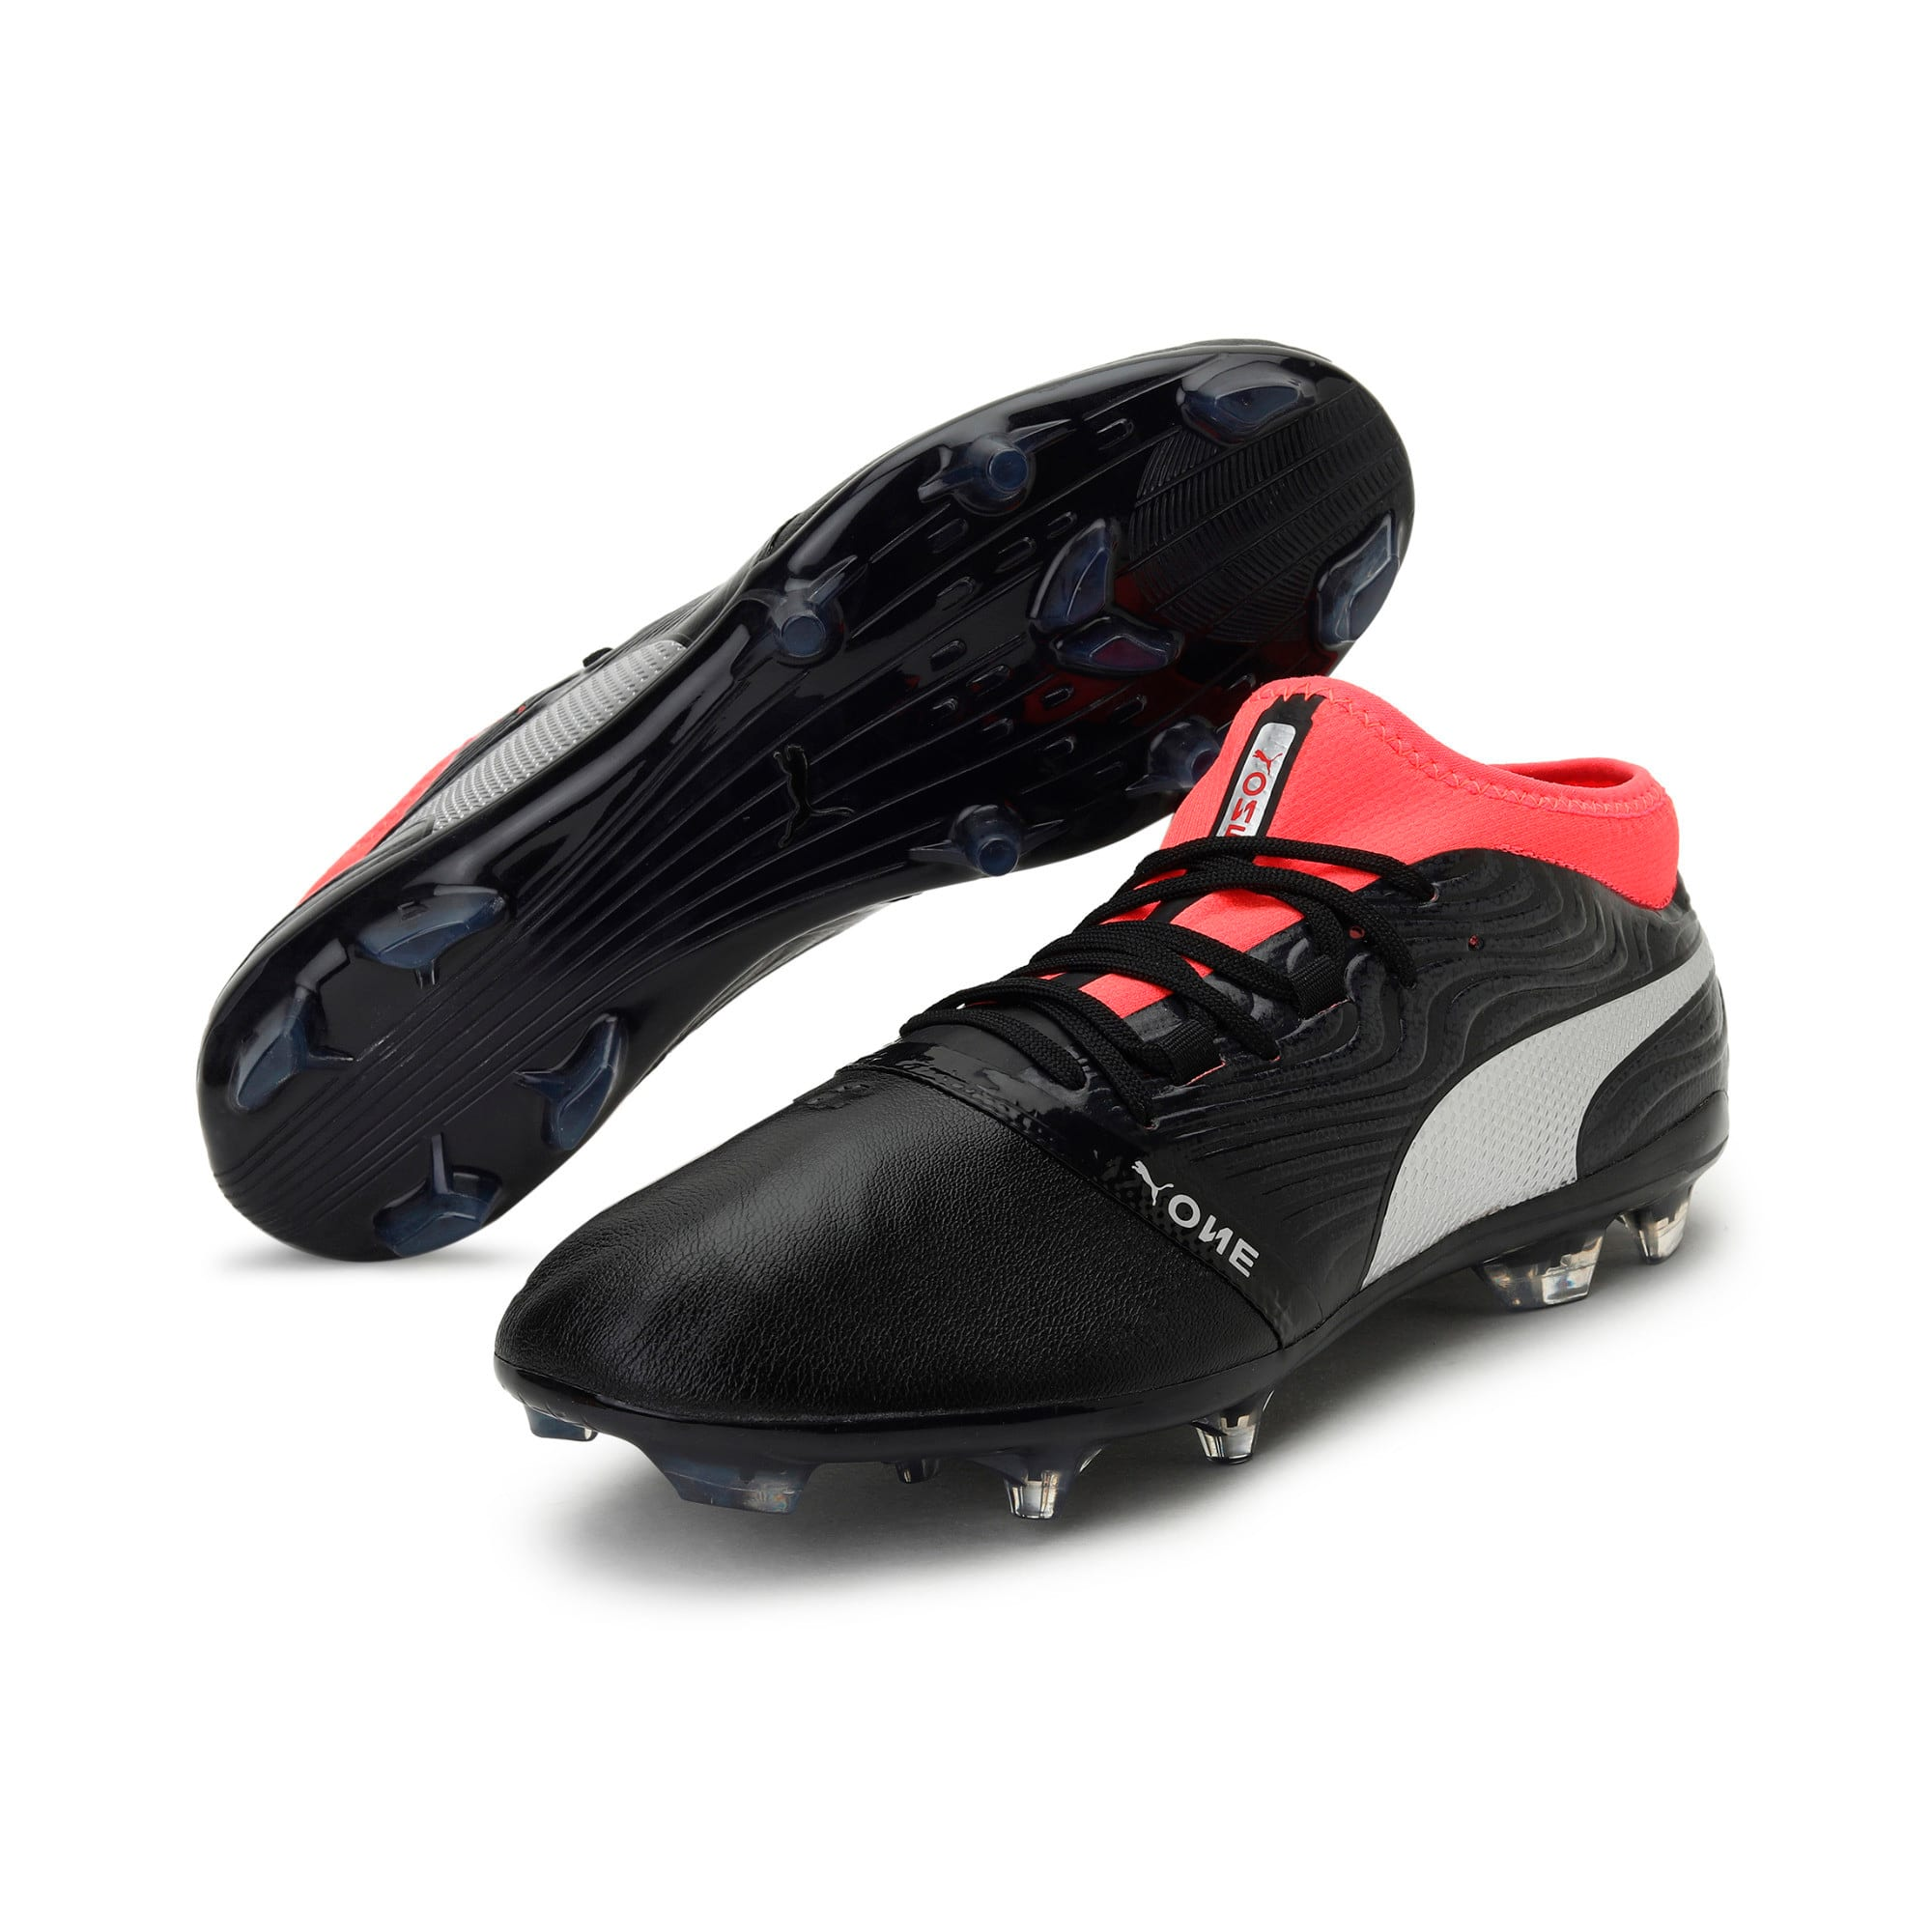 Thumbnail 2 of ONE 18.2 FG Men's Football Boots, Black-Silver-Red, medium-IND